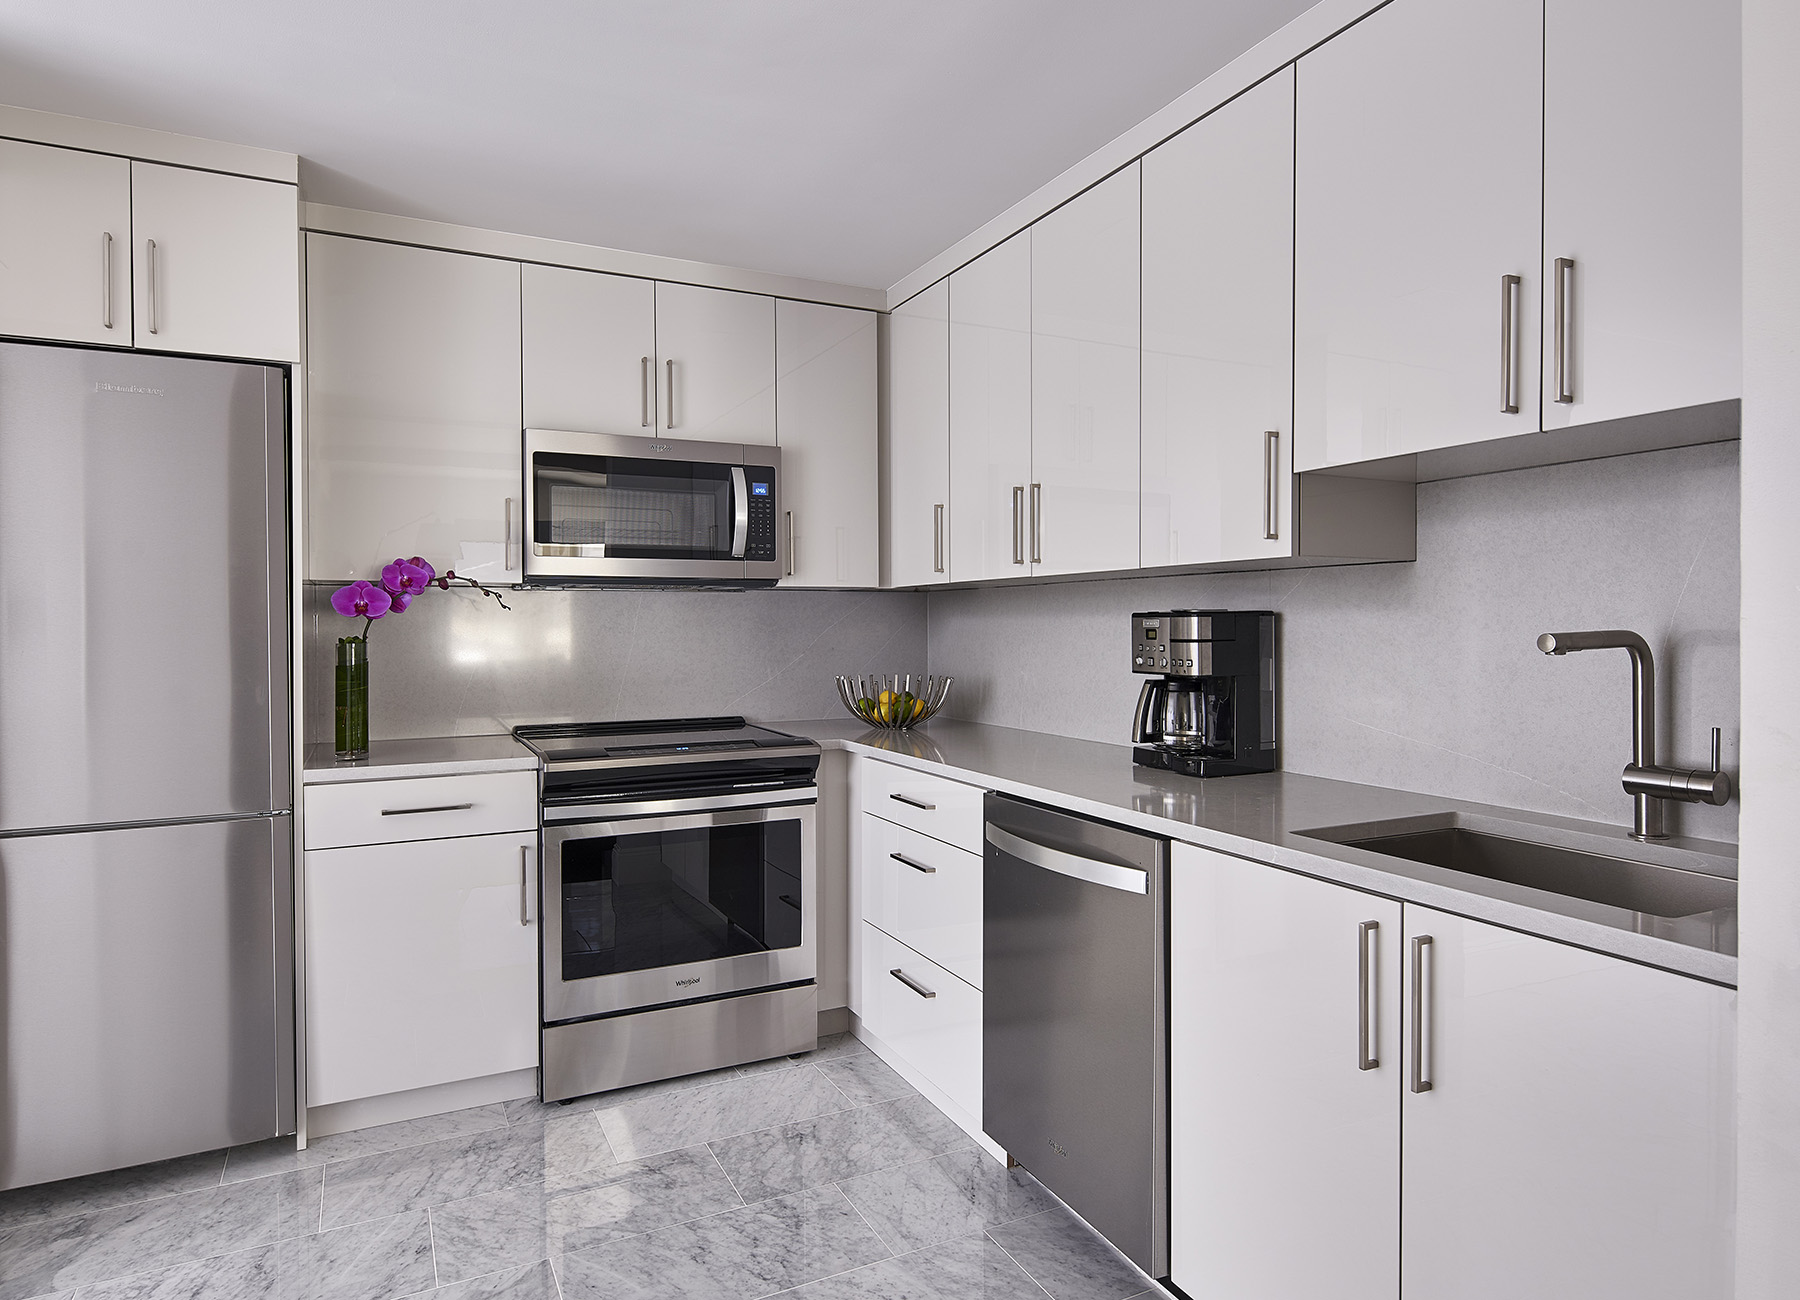 AKA Central Park kitchen with white countertops and full sized appliances